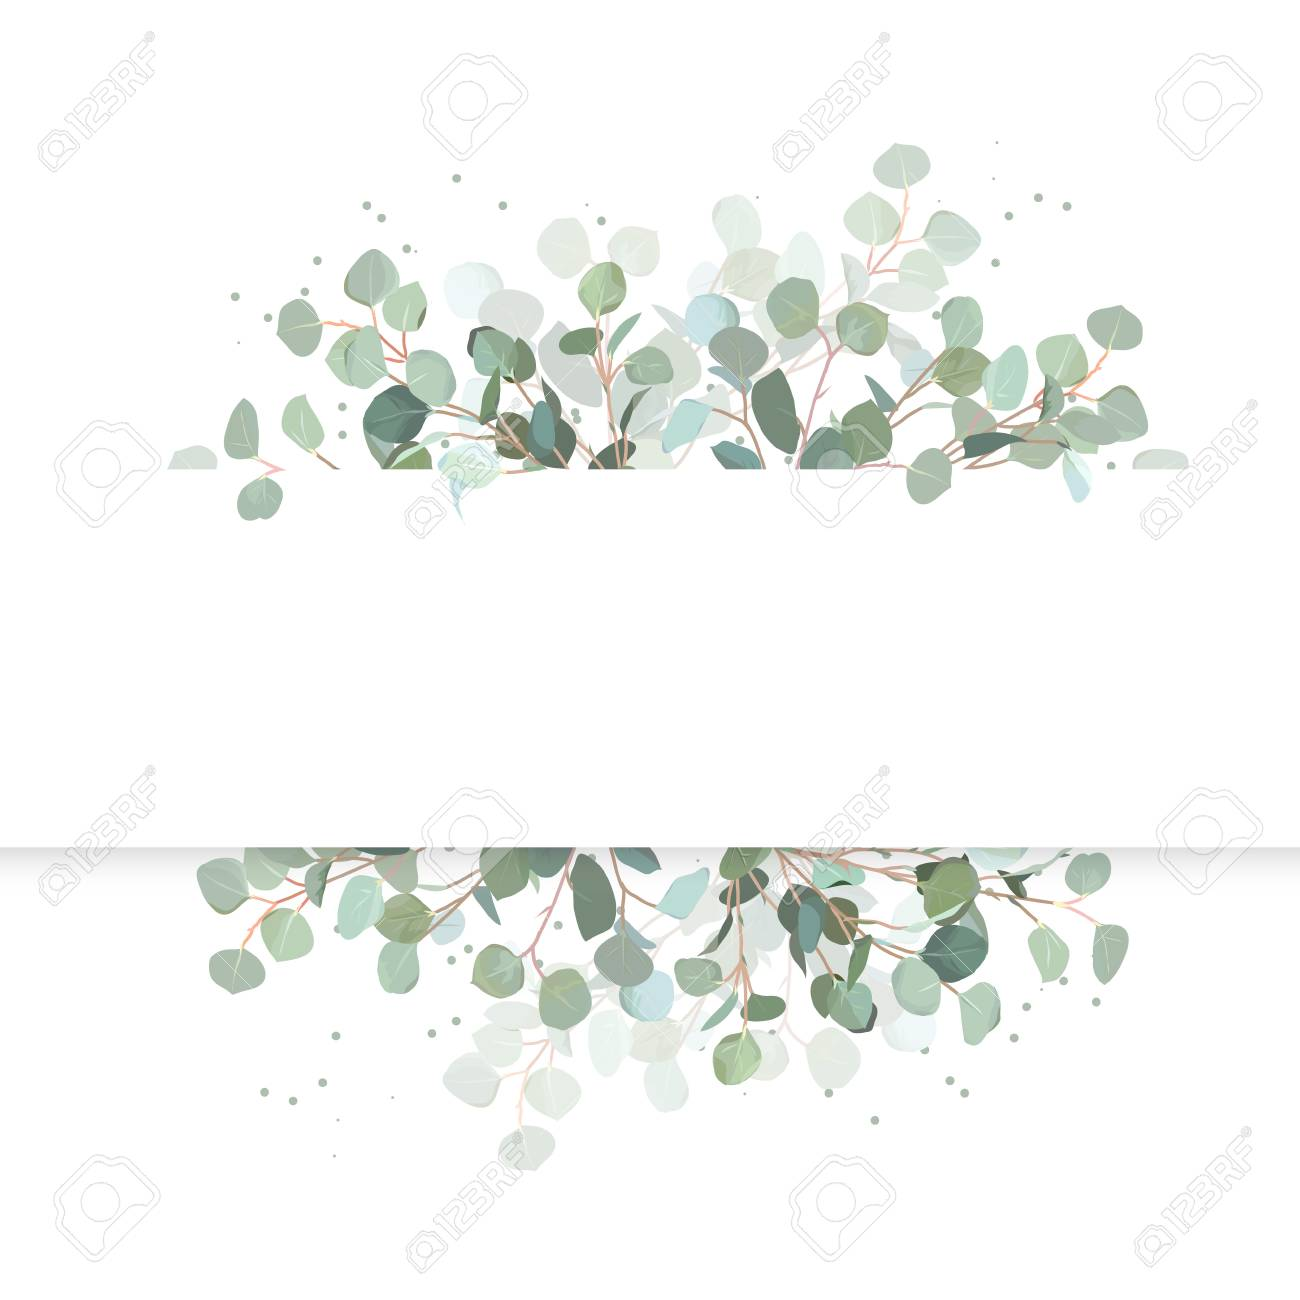 Wedding eucalyptus horizontal vector design banner. Rustic greenery. Mint, blue tones. Watercolor style collection. Mediterranean tree. All elements are isolated and editable - 94711772